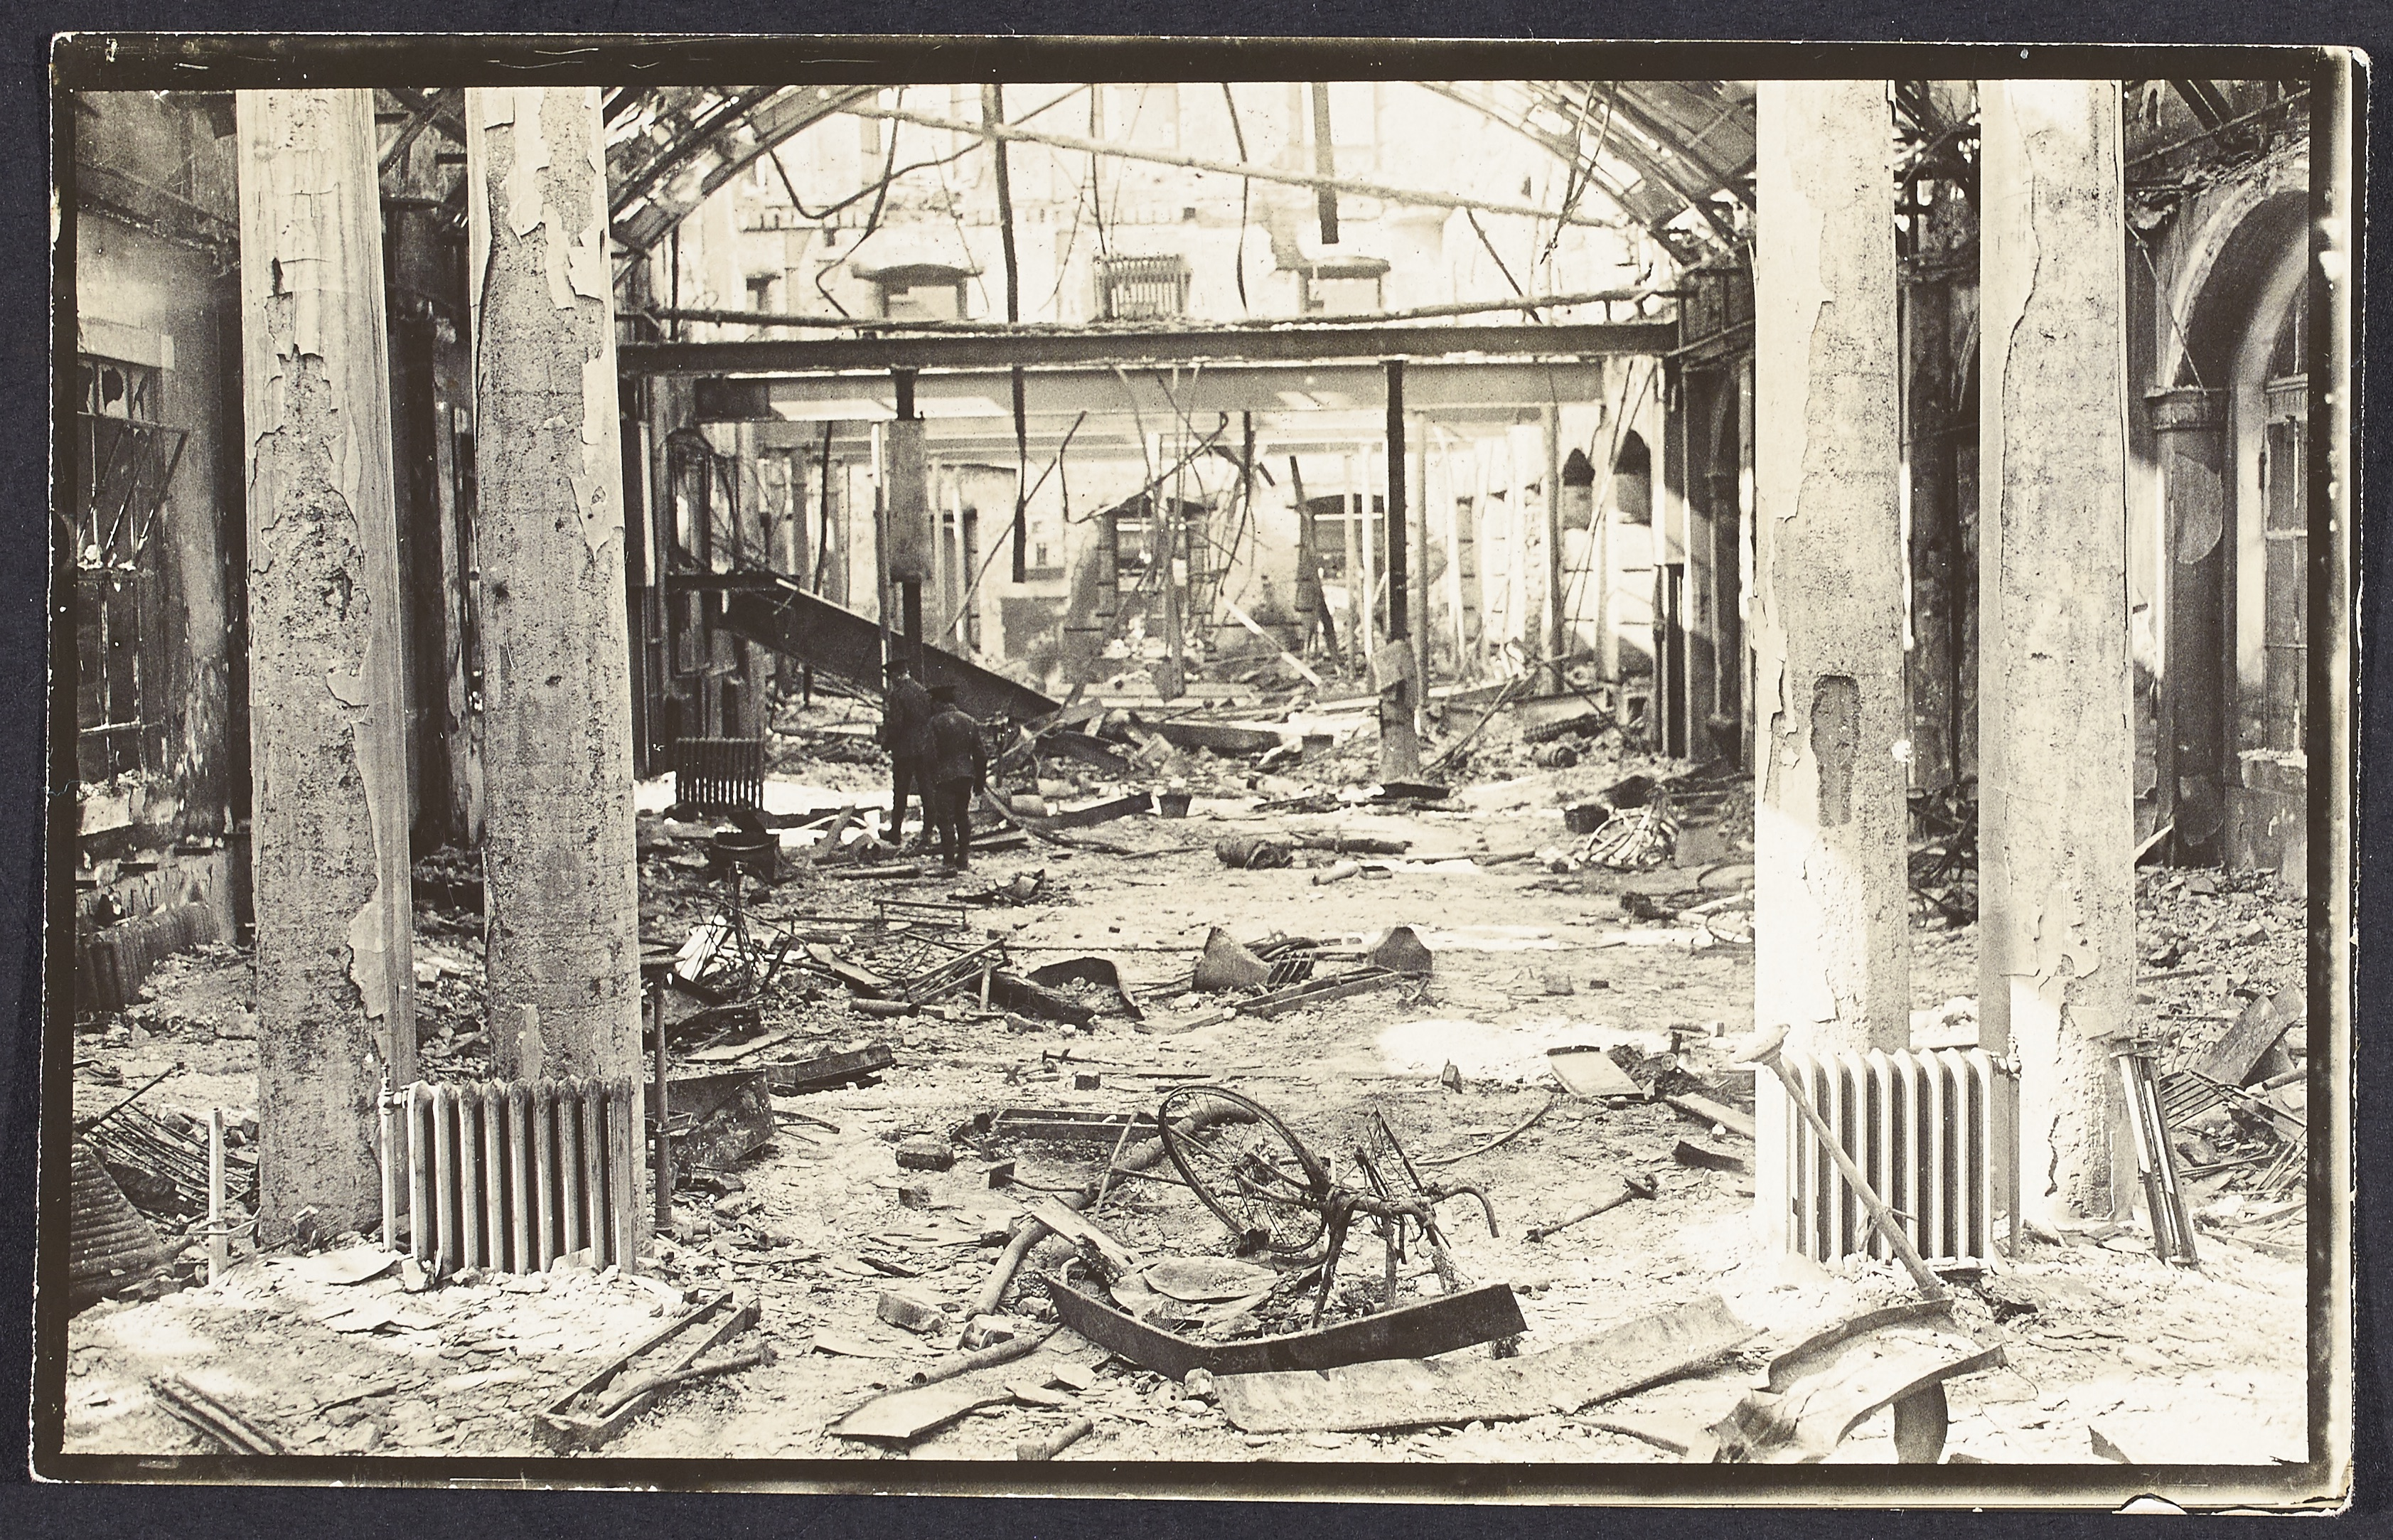 Ruins of the interior of the General Post Office following the 1916 Rising.